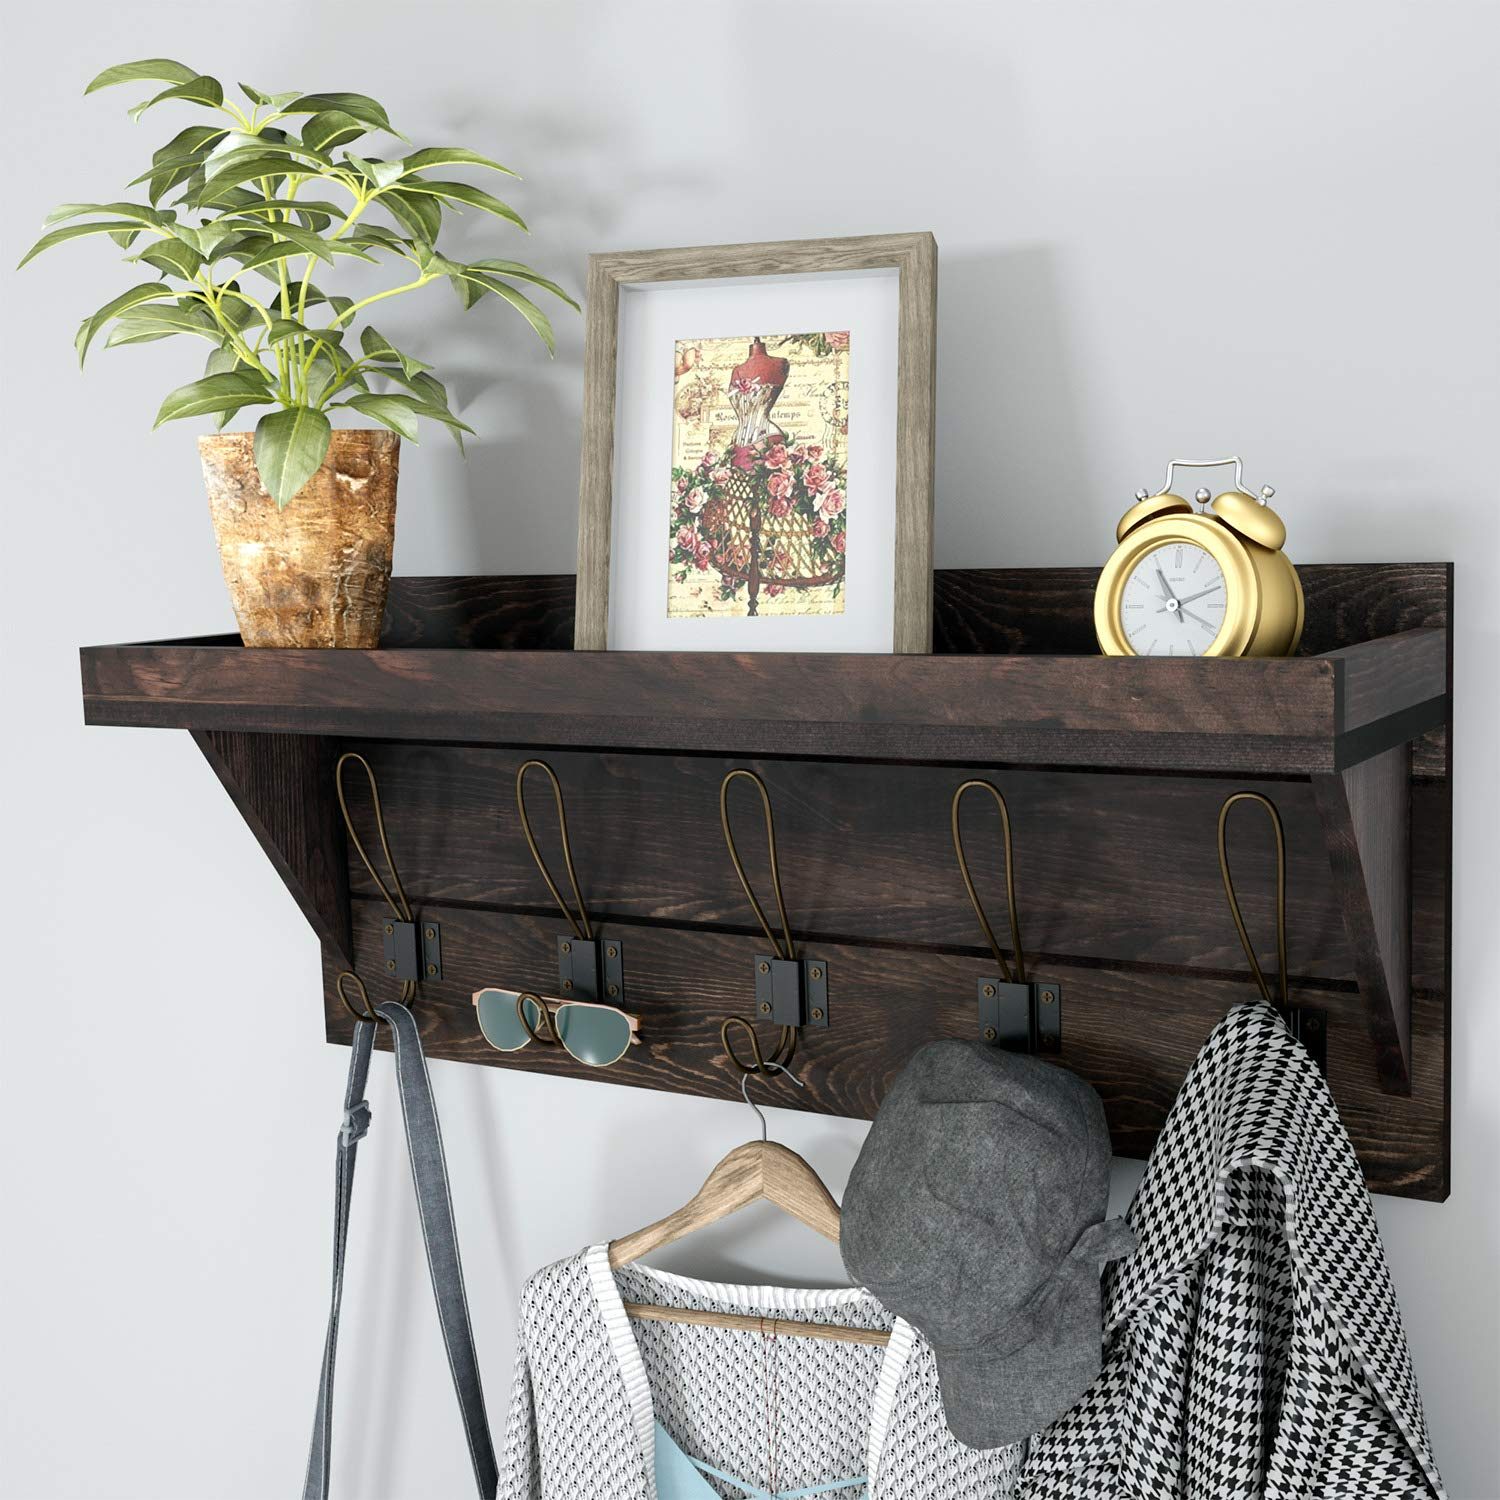 NEARPOW Coat Rack Shelf Wall Mounted, Rustic Coat Rack with Wider Shelf and Fence, Wooden Hanging Coat Rack 24 Entryway Shelf with 5 Dual Hooks, Perfect for Your Entryway, Mudroom, Kitchen, Bathroom